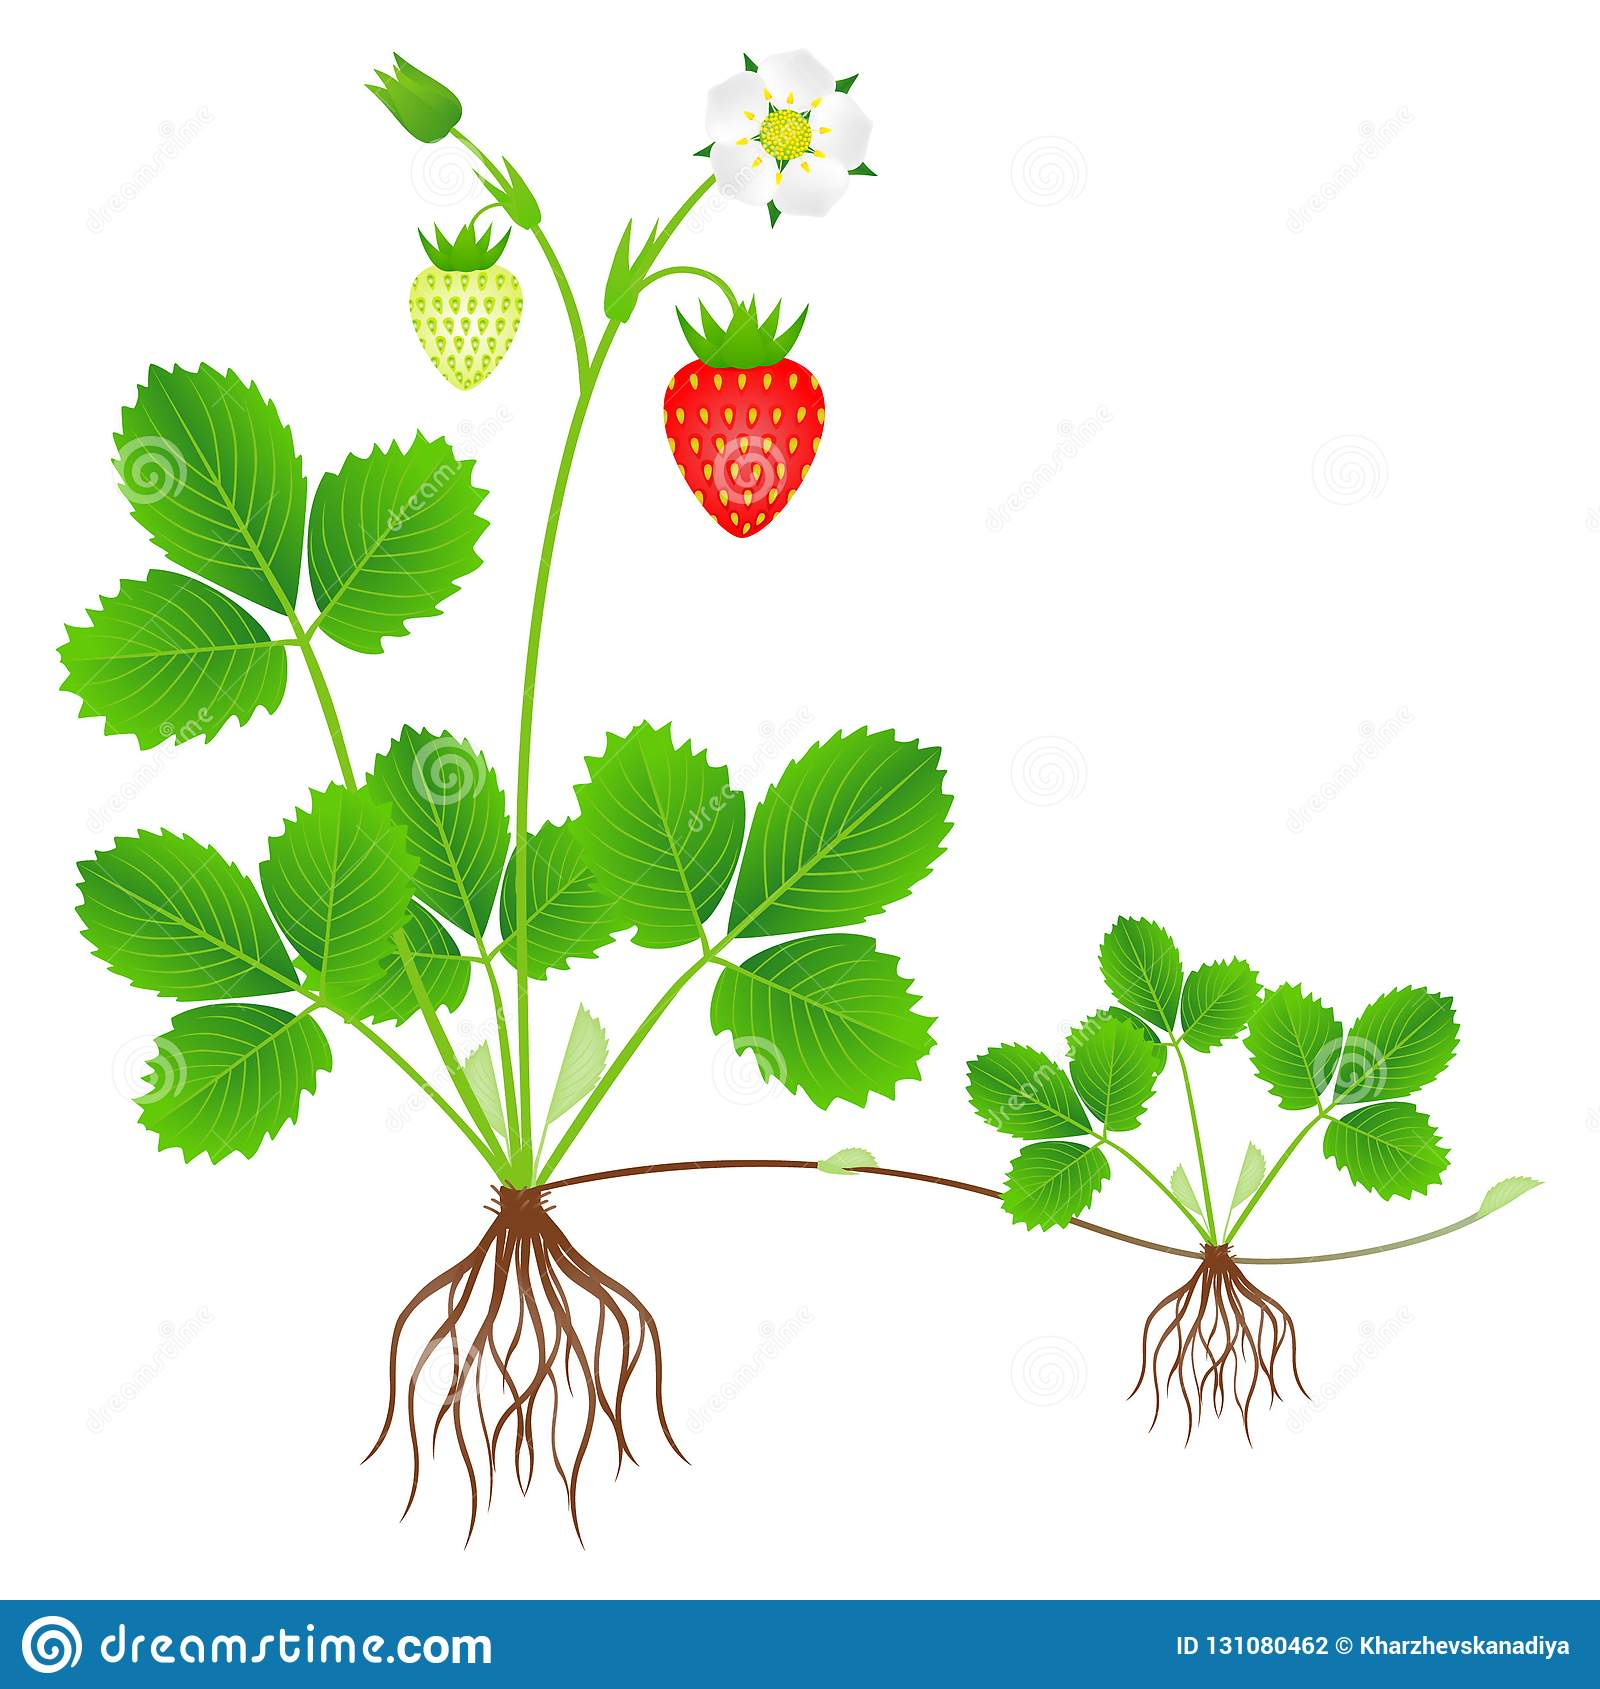 Strawberry plant with roots, flowers, fruits and daughter plant.